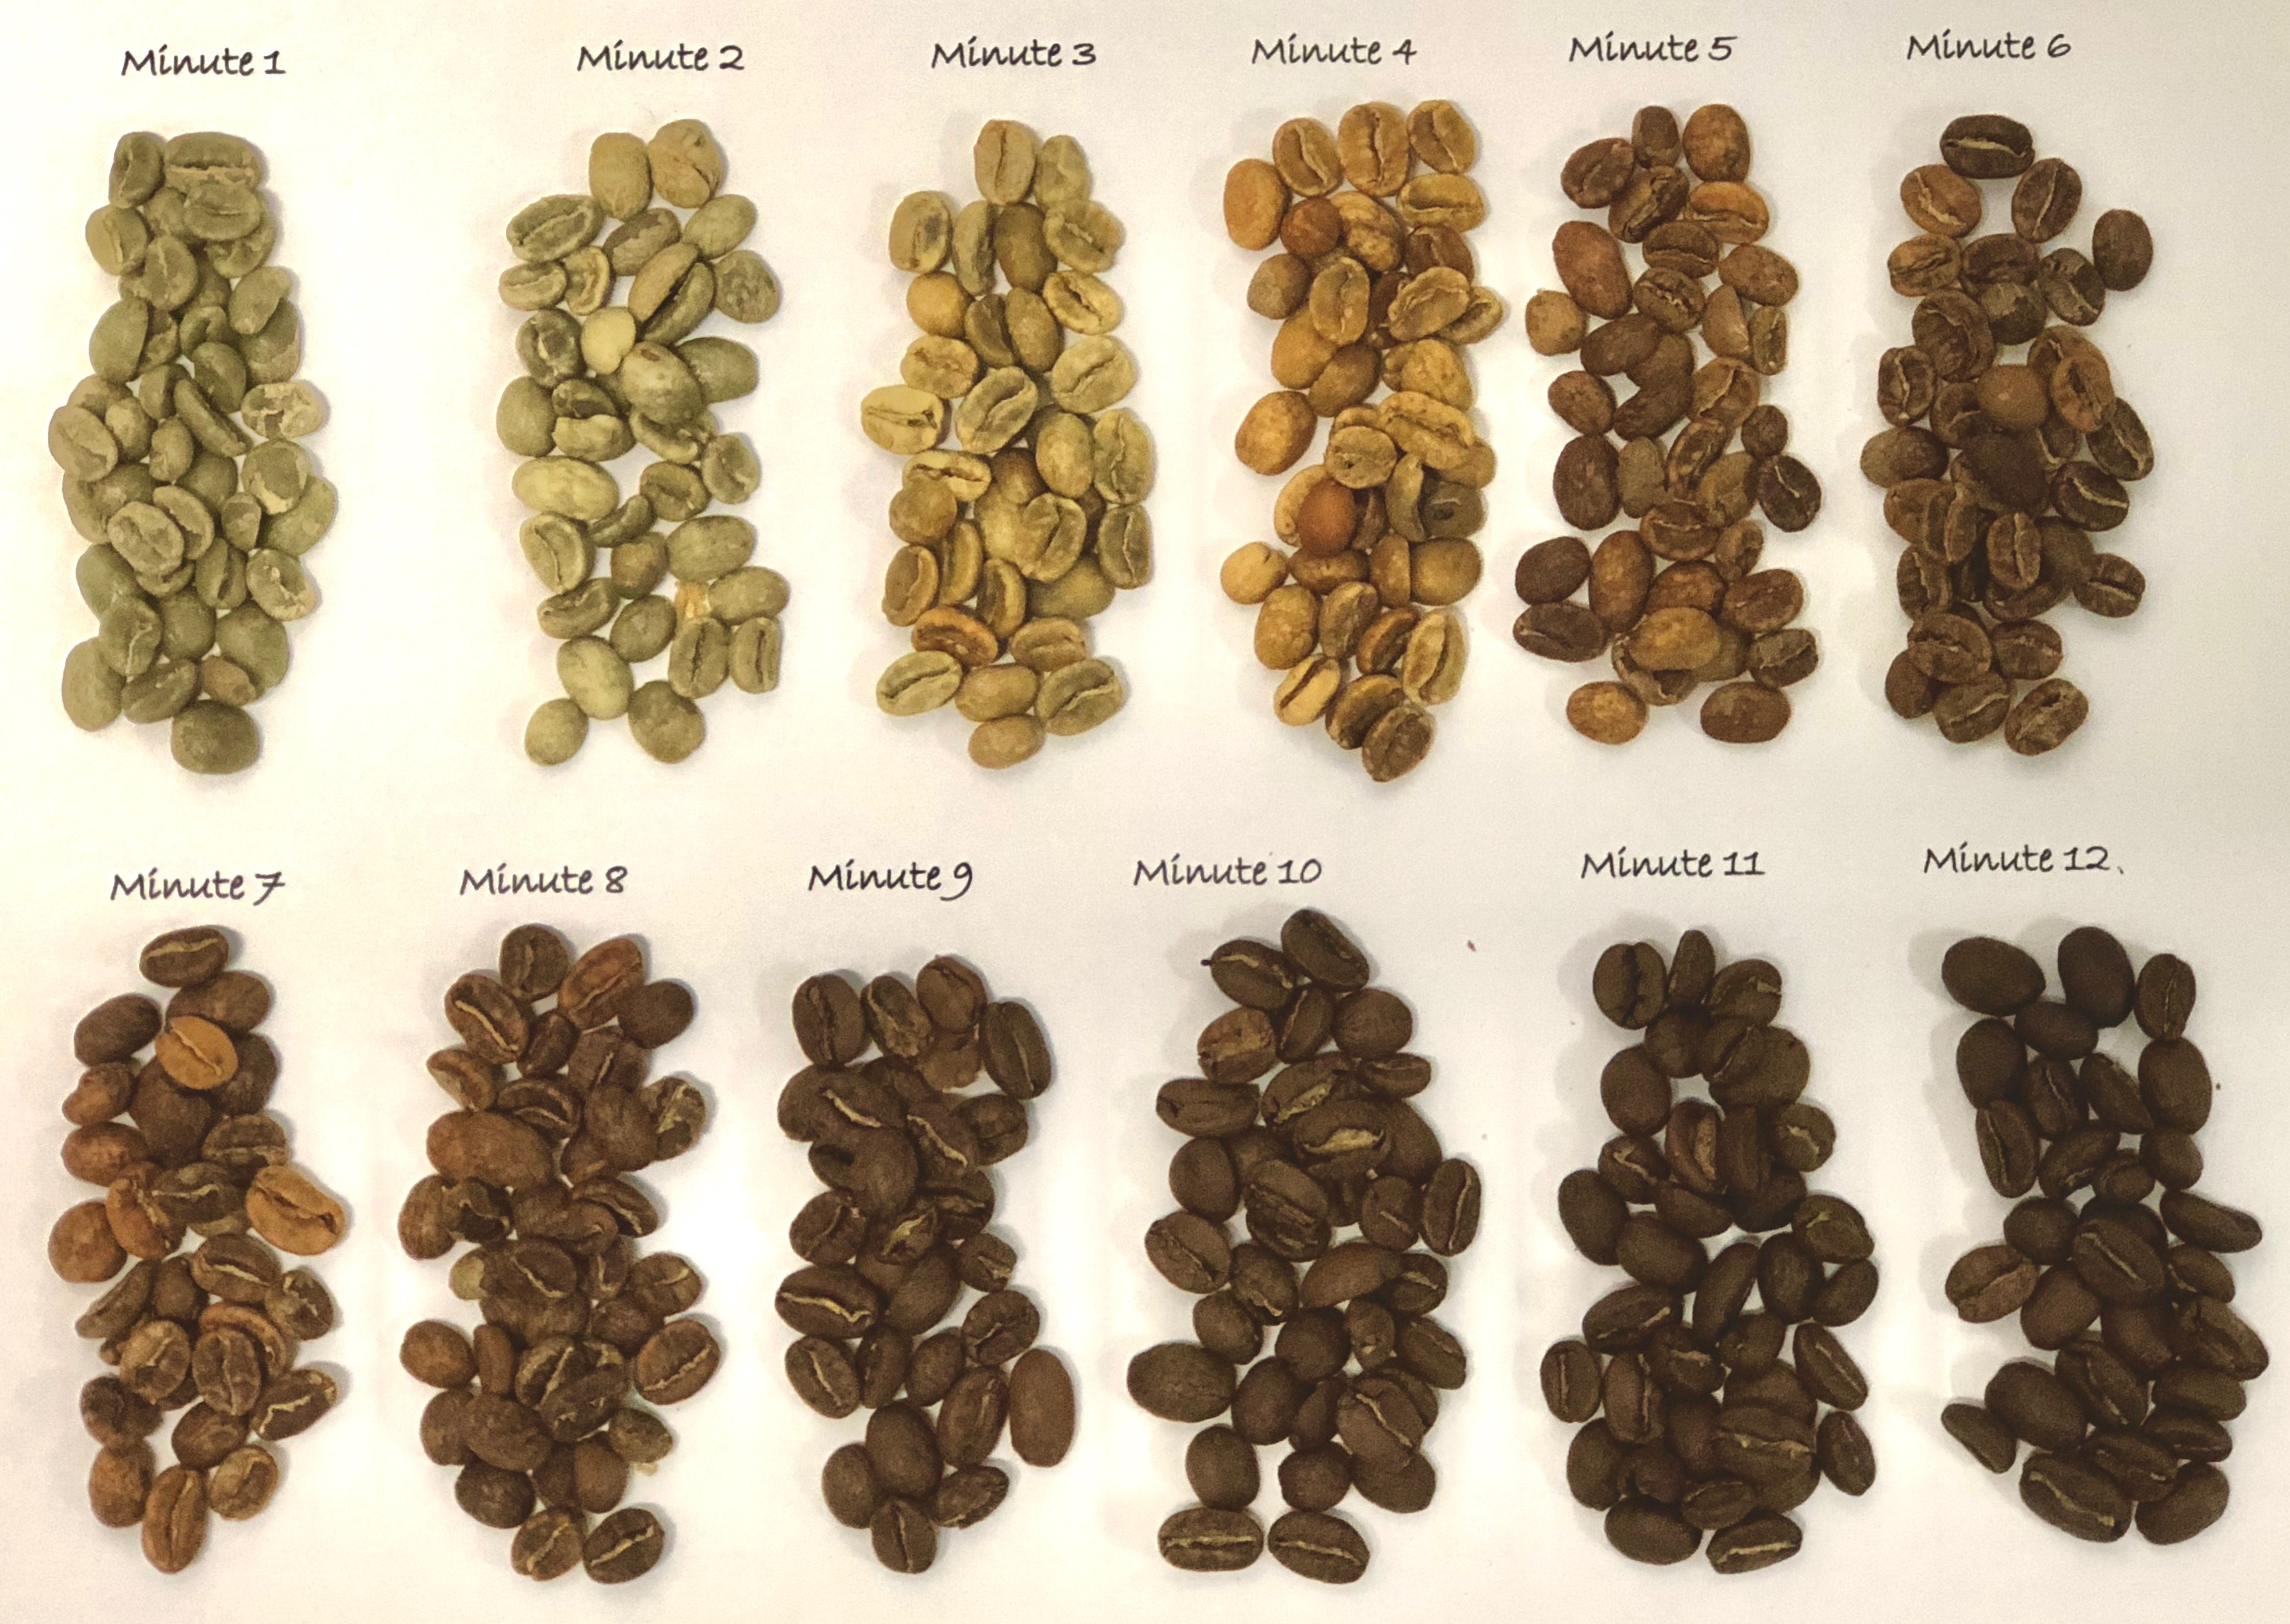 how coffee was discovered 1 - How Coffee Was Discovered